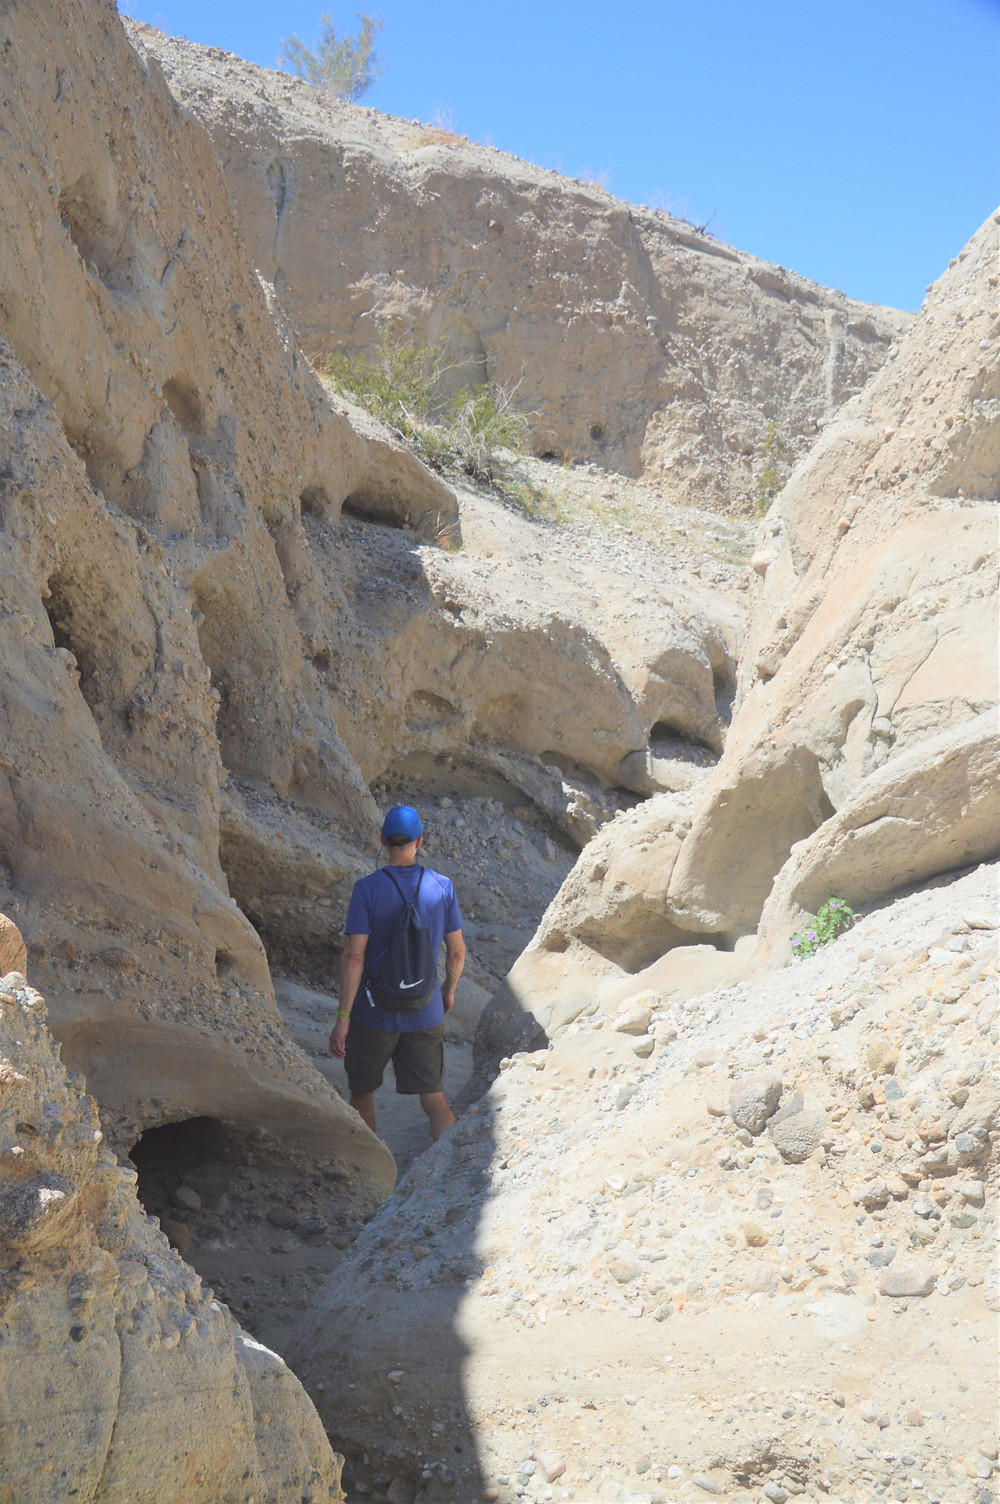 Wind and water erosion in sedimentary rock along the Indio Hills Badland Loop Trail